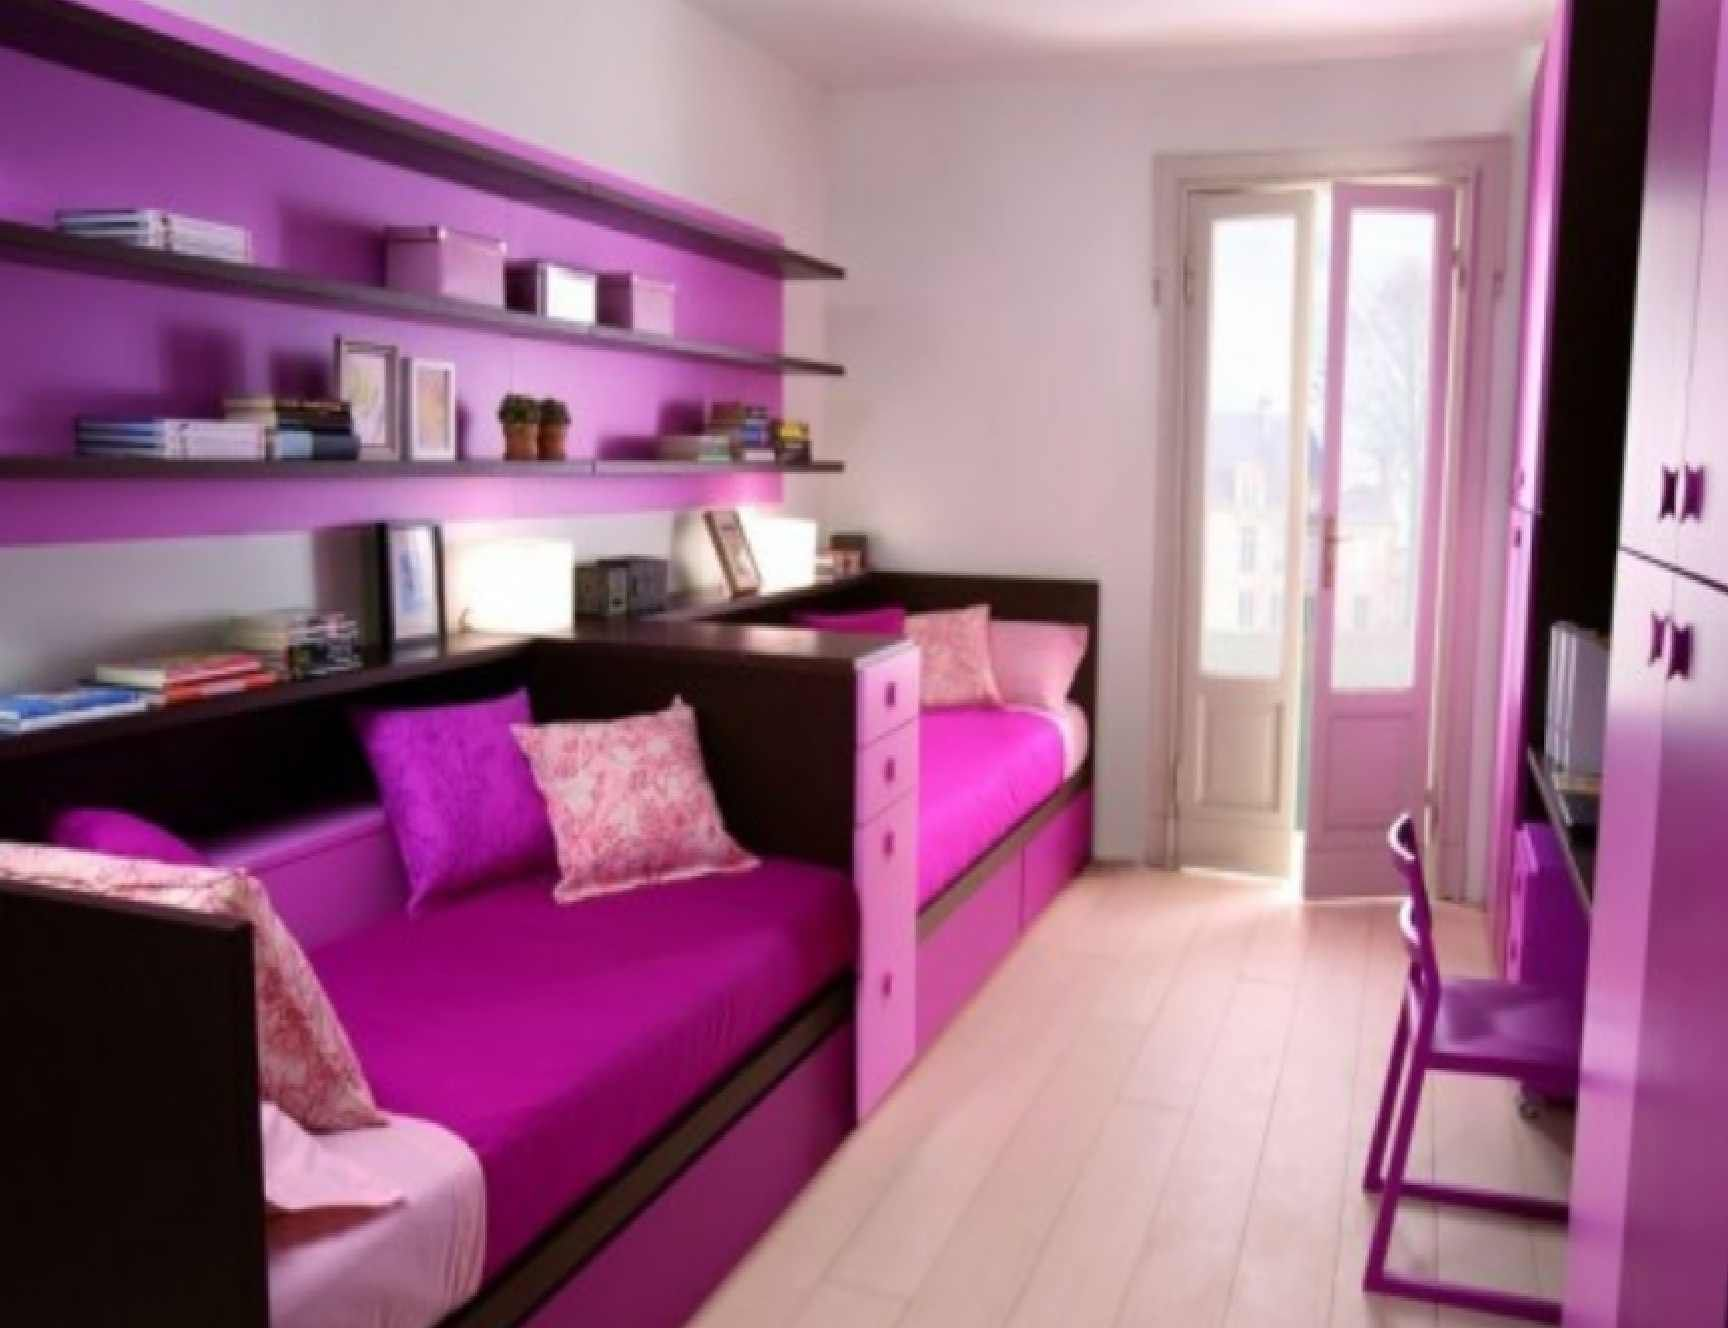 Cute Apartment Bedroom Ideas Ideas Painting furniture. new design and furnitures for cute girl bedroom ideas